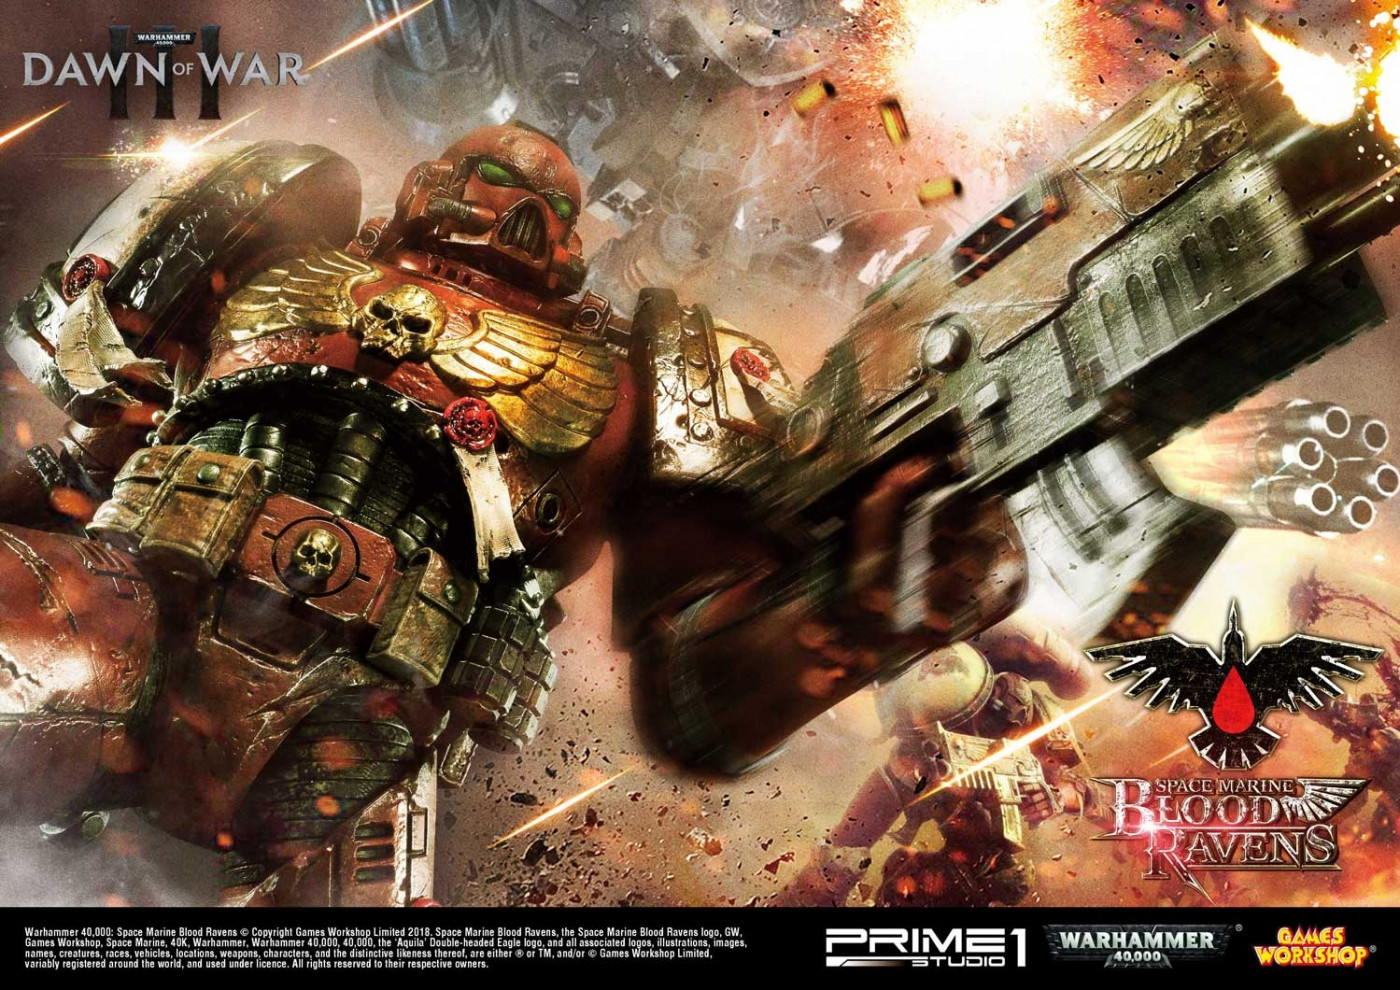 Premium Masterline Warhammer 40,000: Dawn of War III Space Marine Blood Ravens